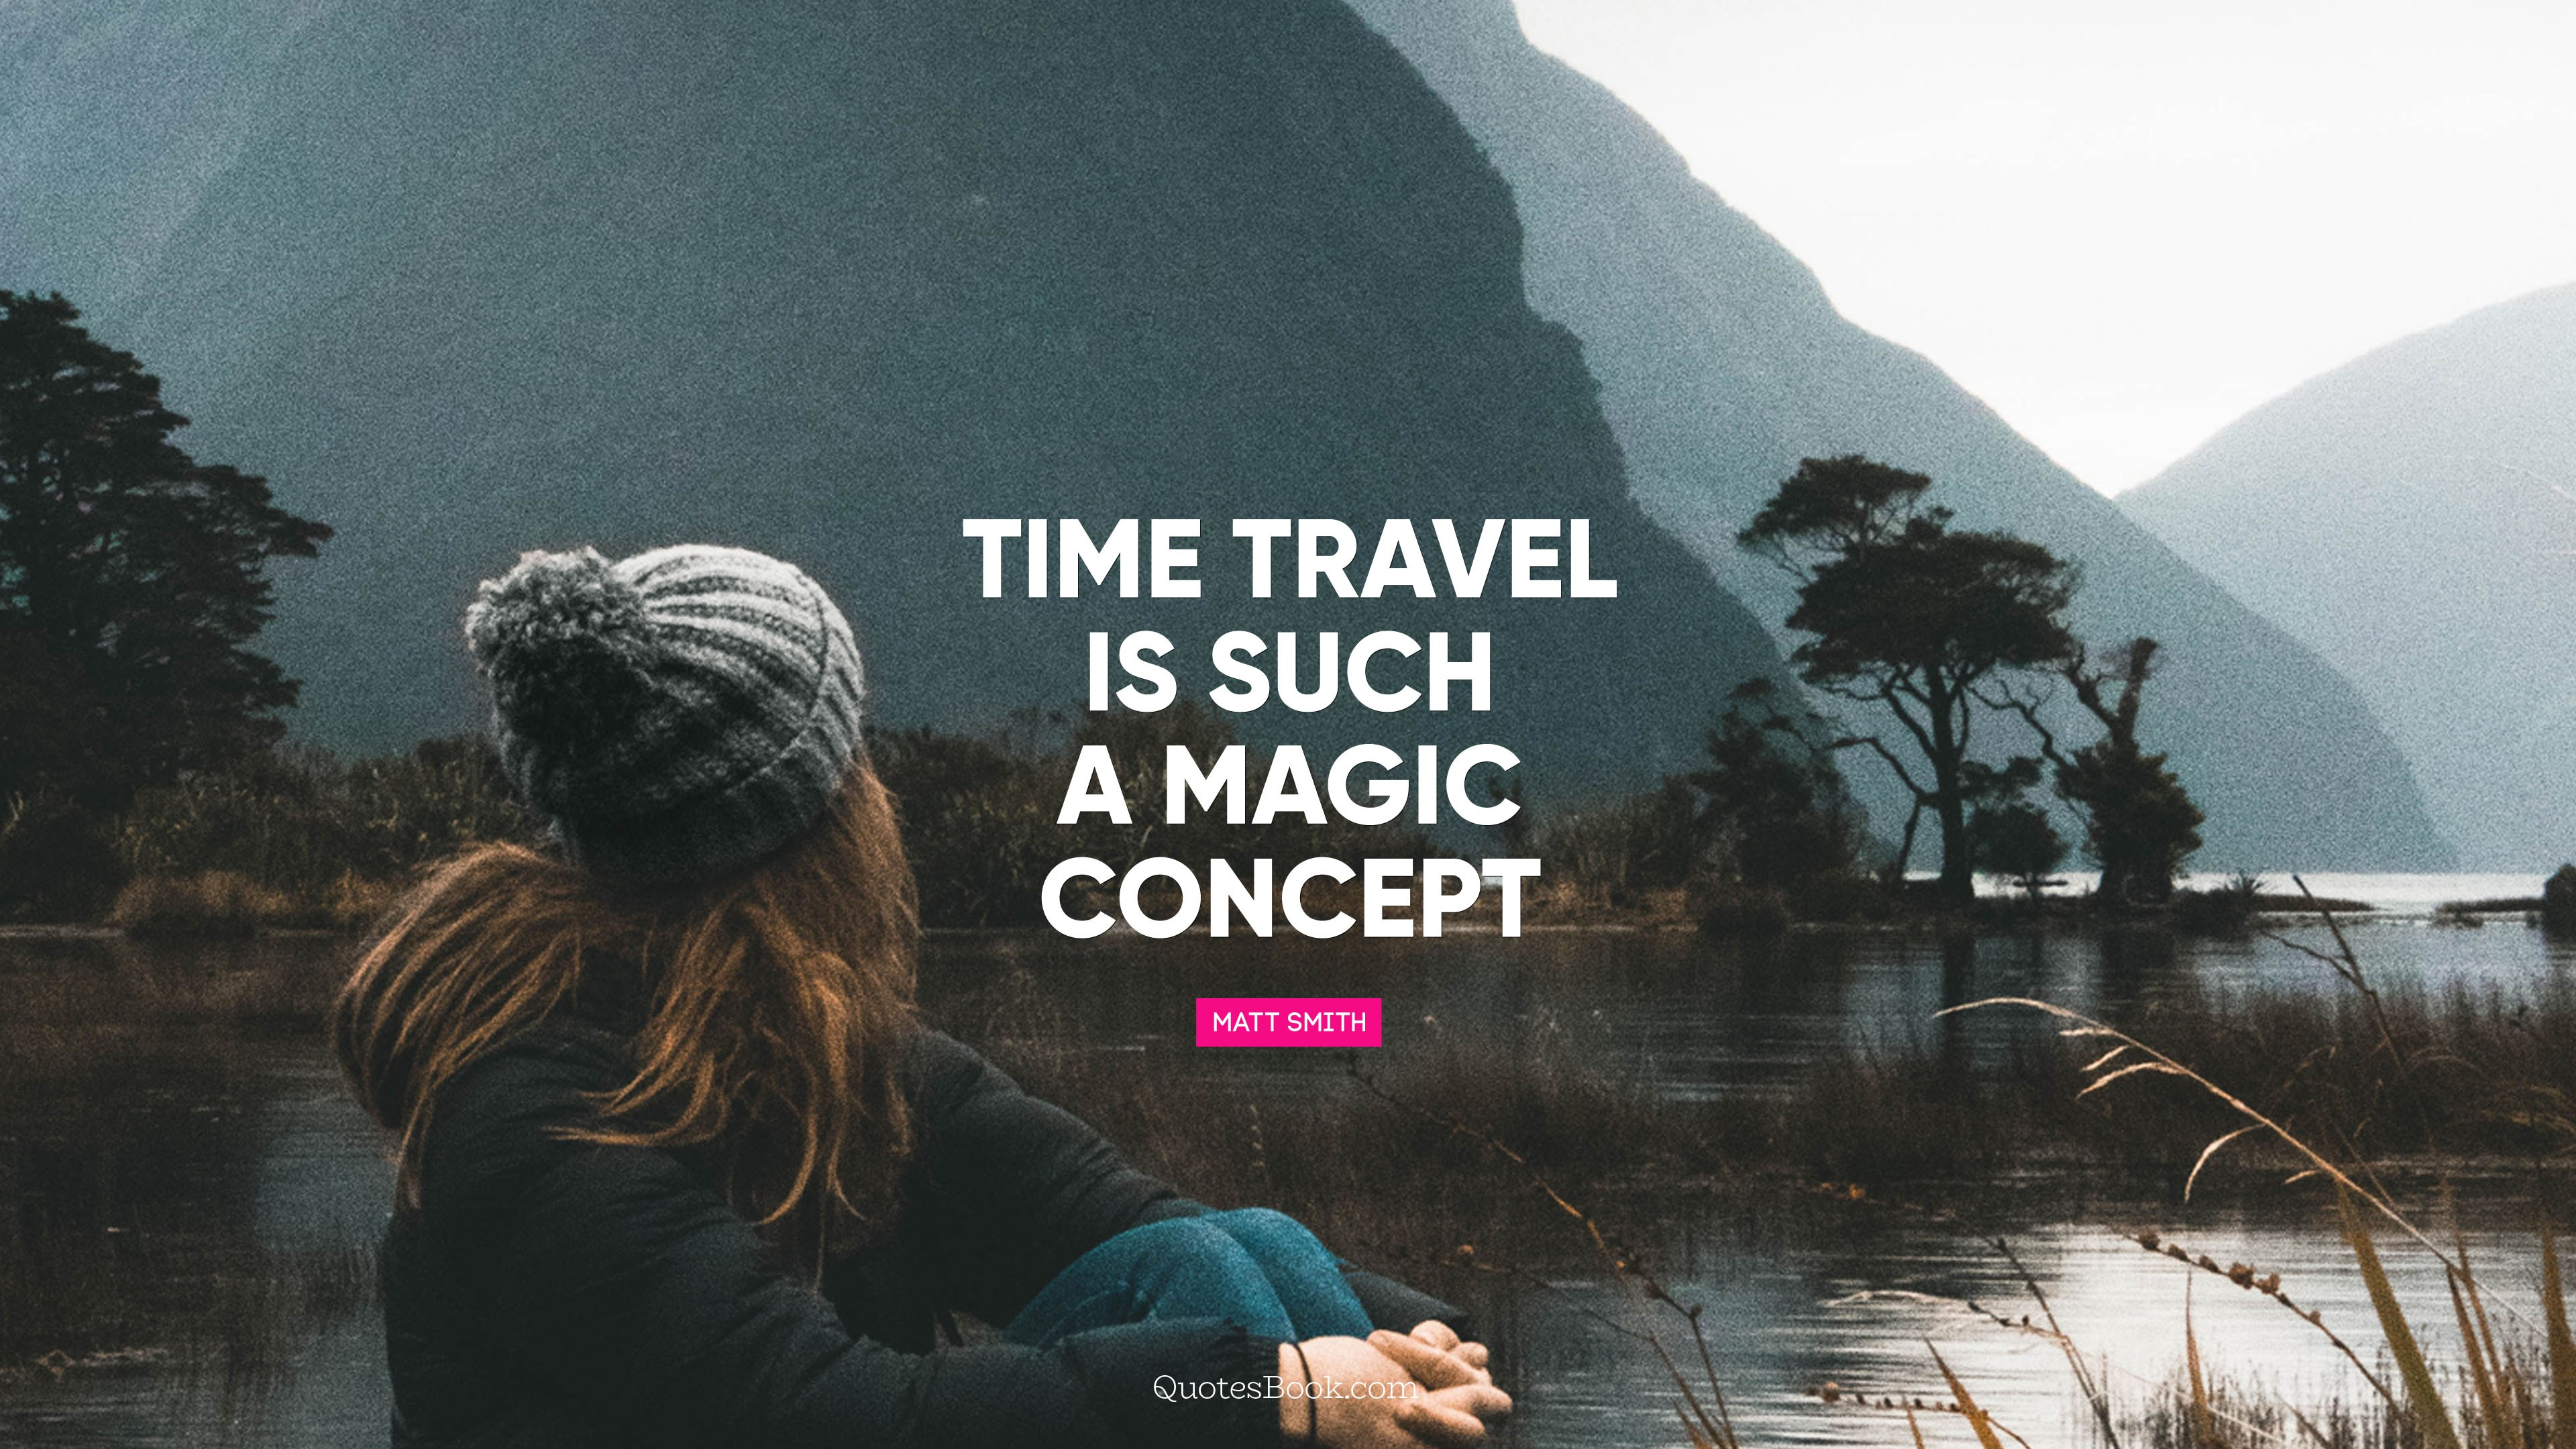 time travel is such a magic concept quote by matt smith page